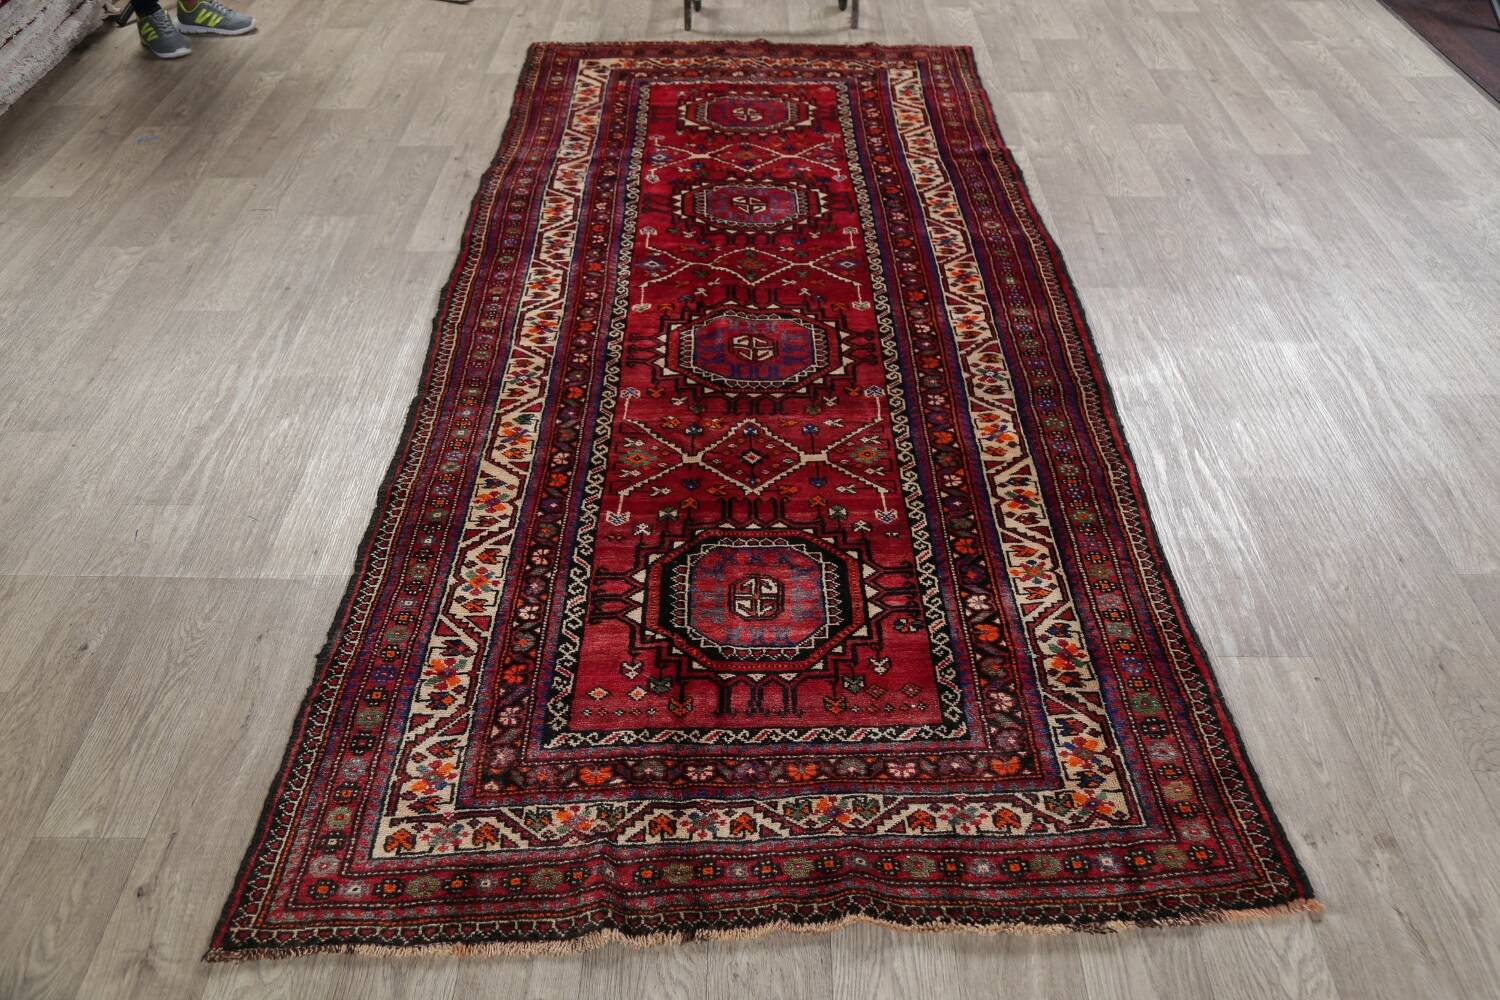 Vintage Geometric Red Malayer Persian Runner Rug 4x9 image 16